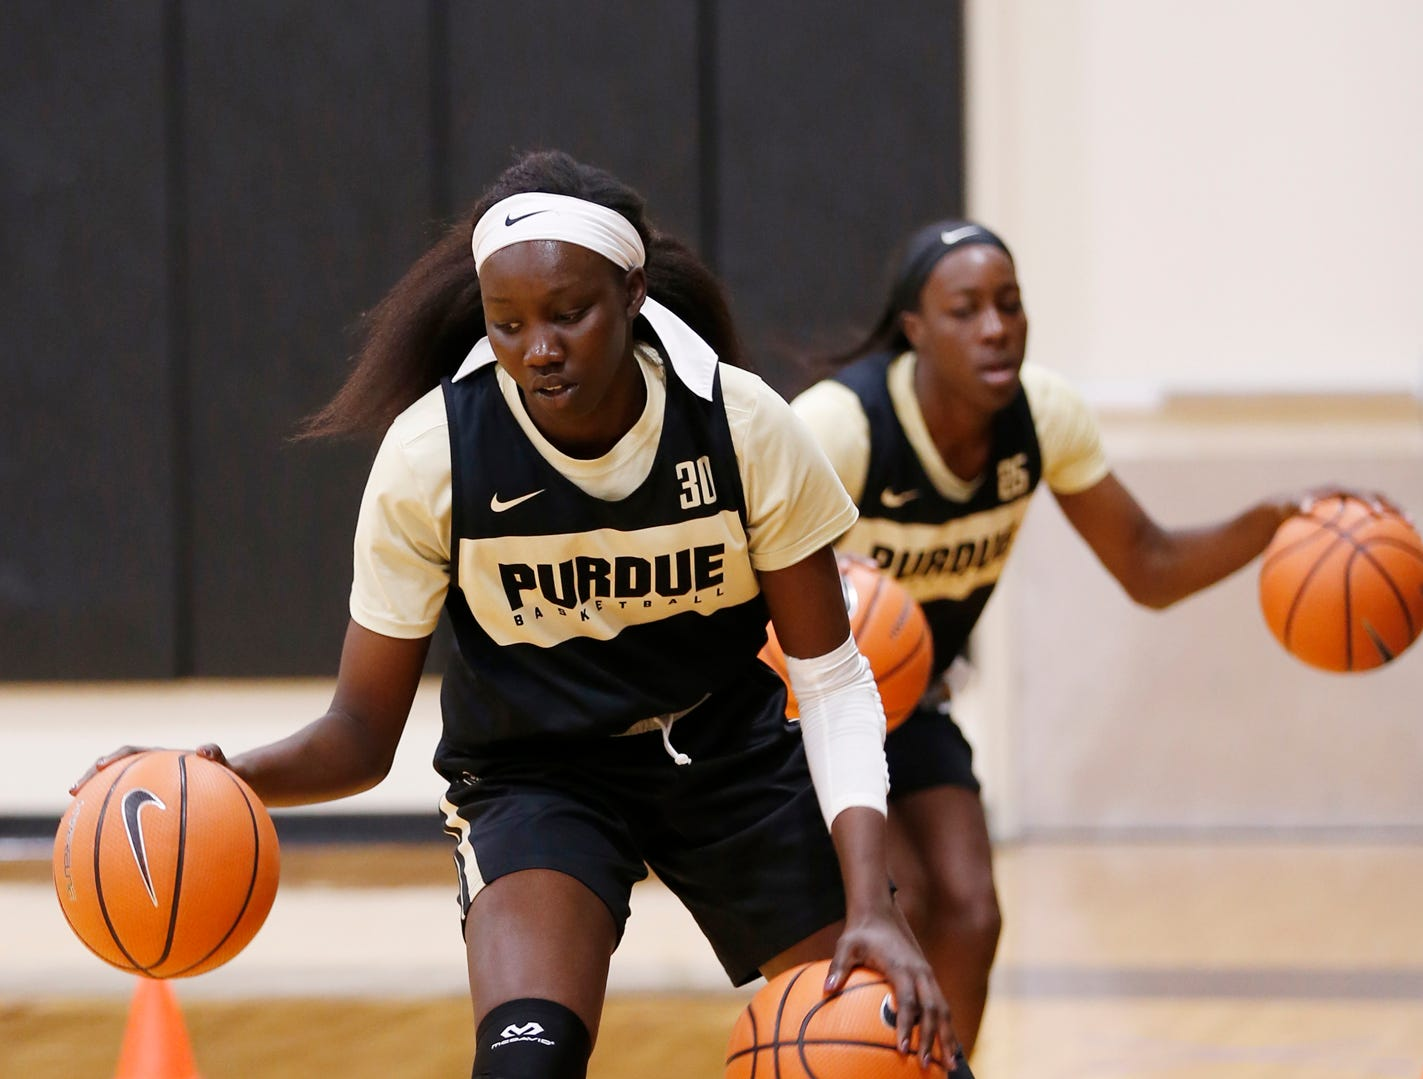 Nyagoa Gony during a dribbling drill at Purdue women's basketball practice Wednesday, September 26, 2018, at Cardinal Court in Mackey Arena.